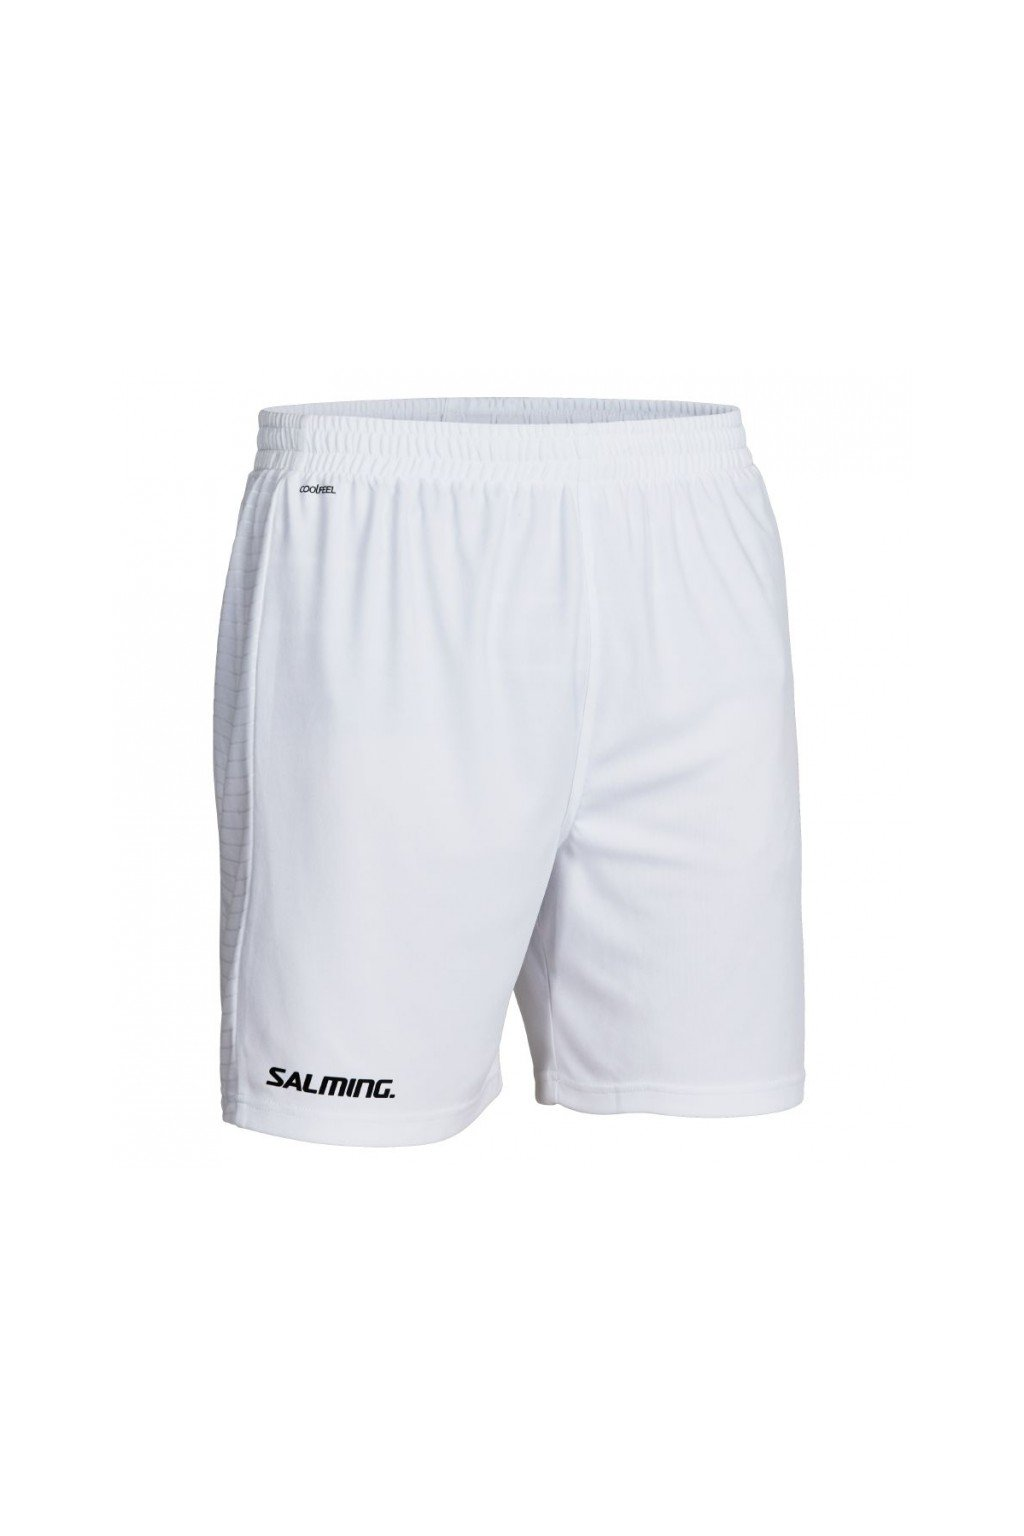 salming granite game shorts jr white 164